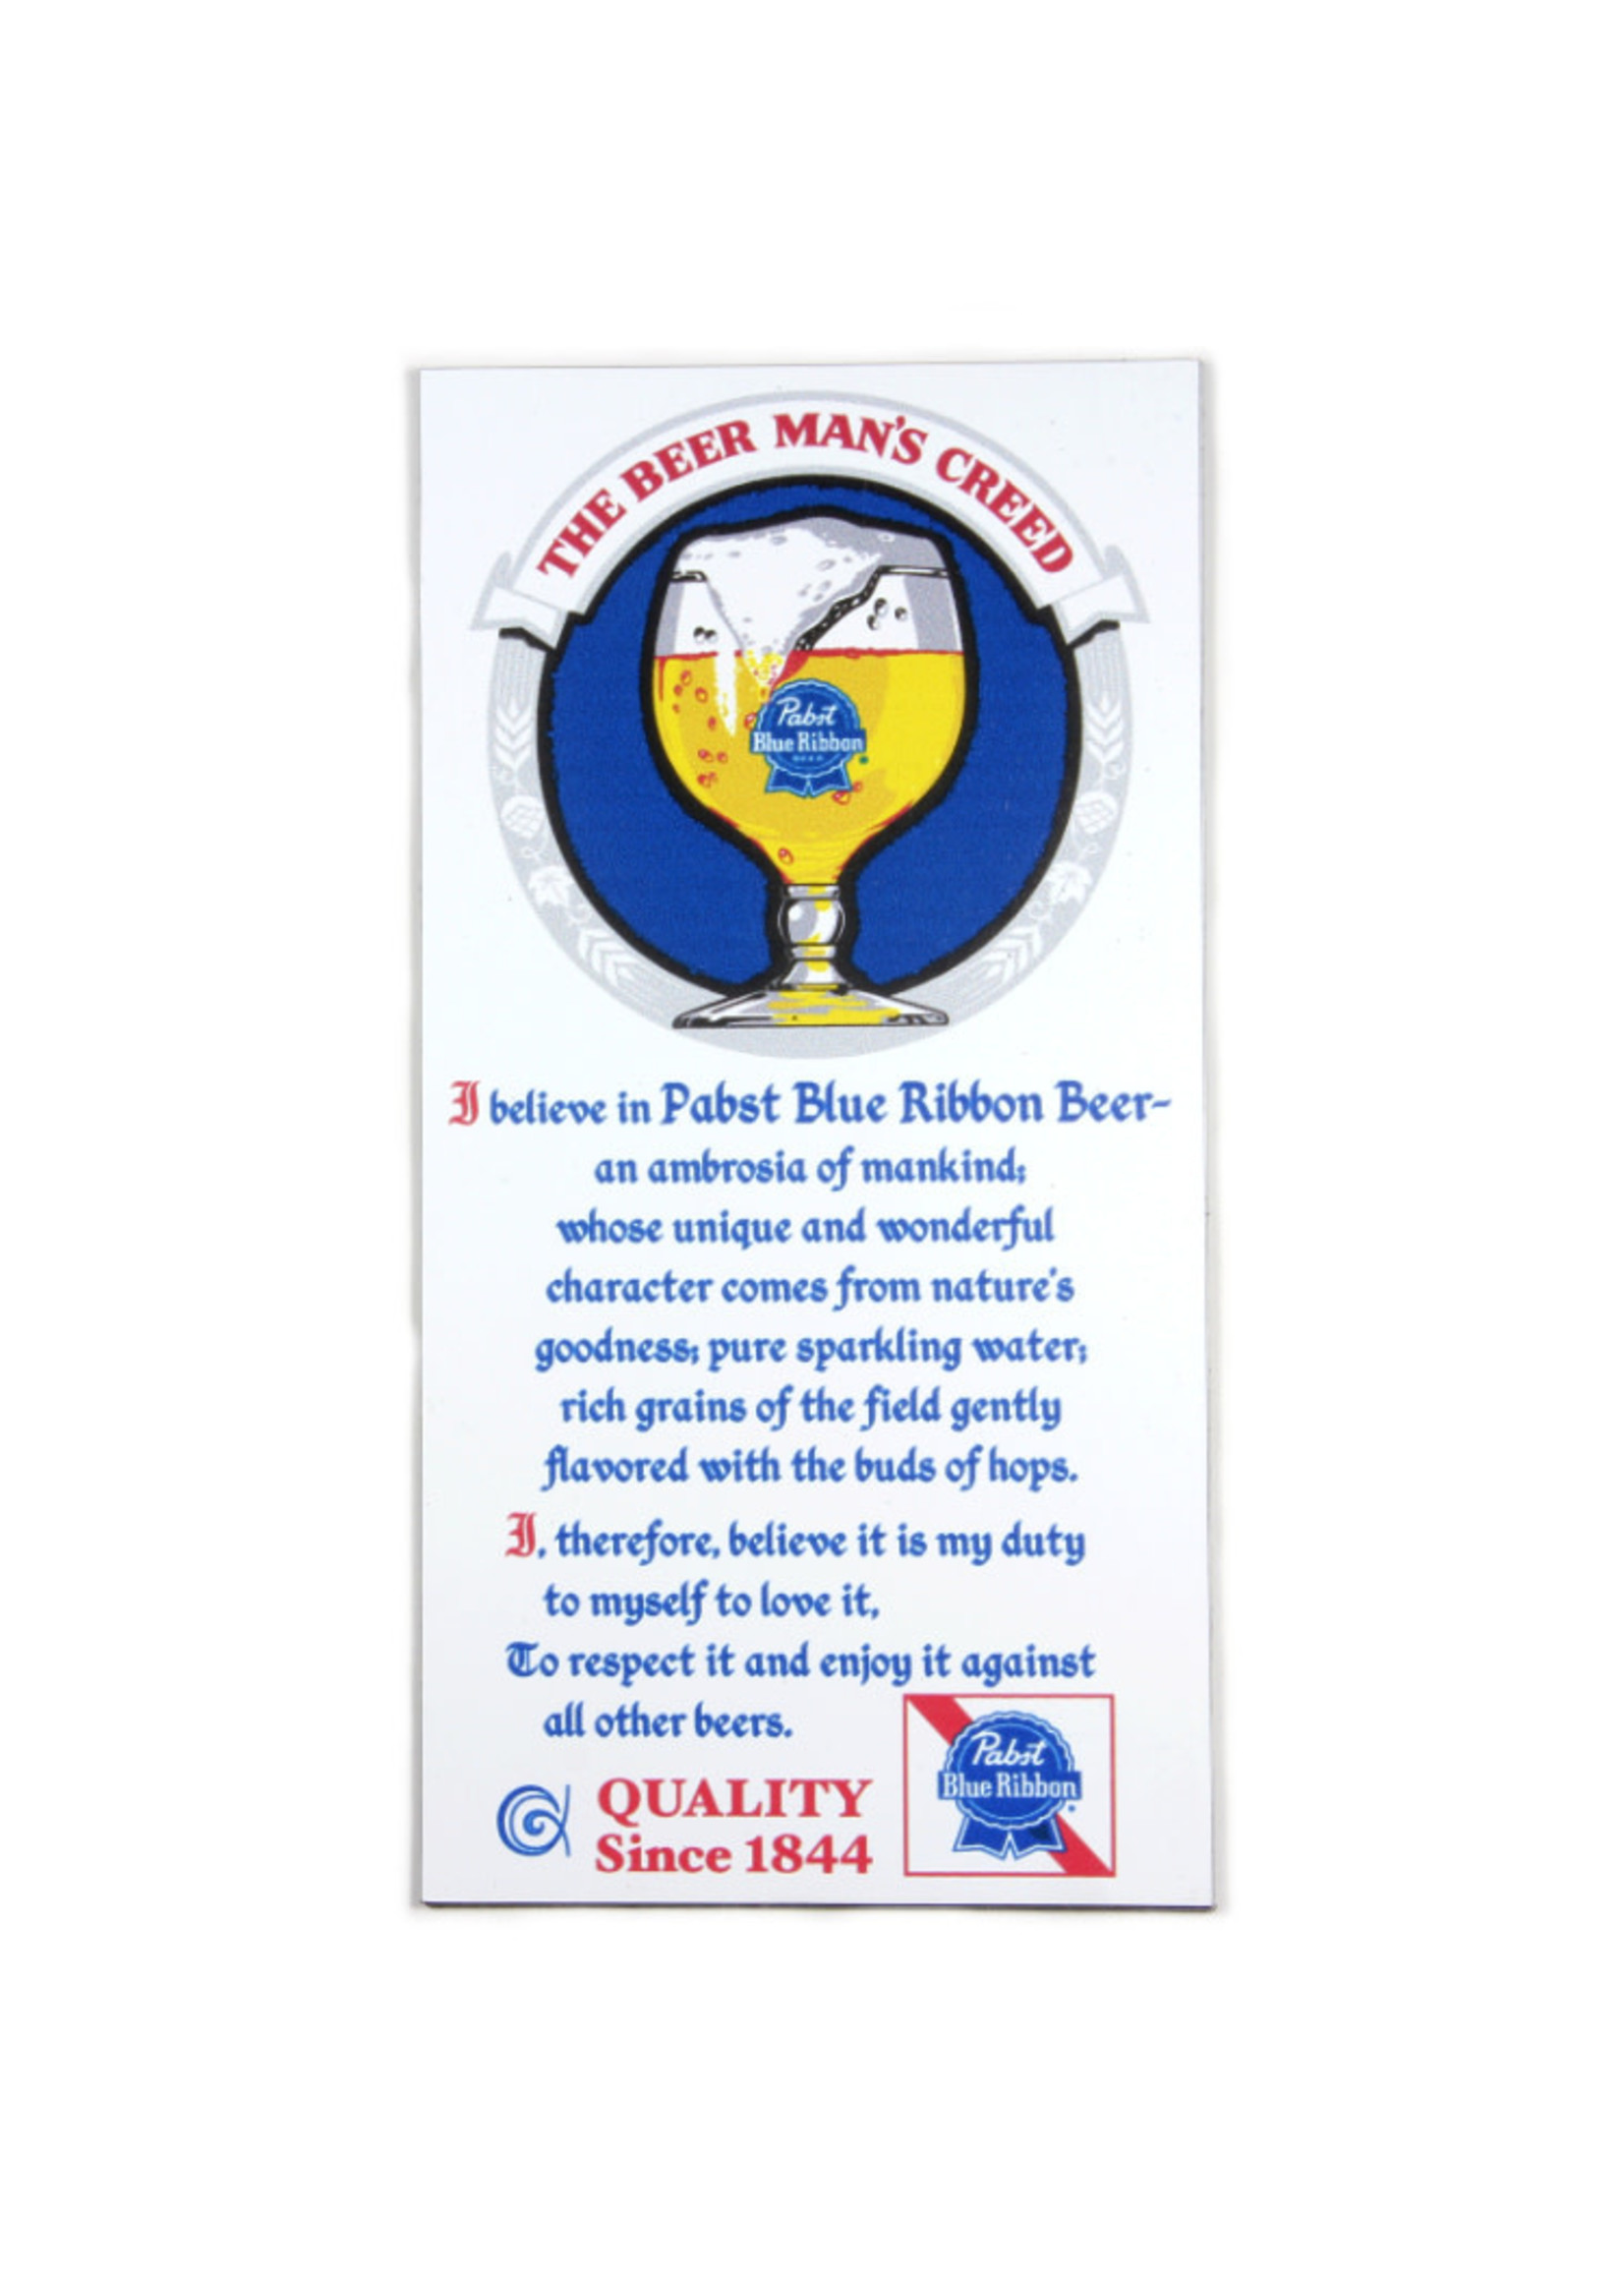 Pabst Pabst Beer Man's Creed Magnet